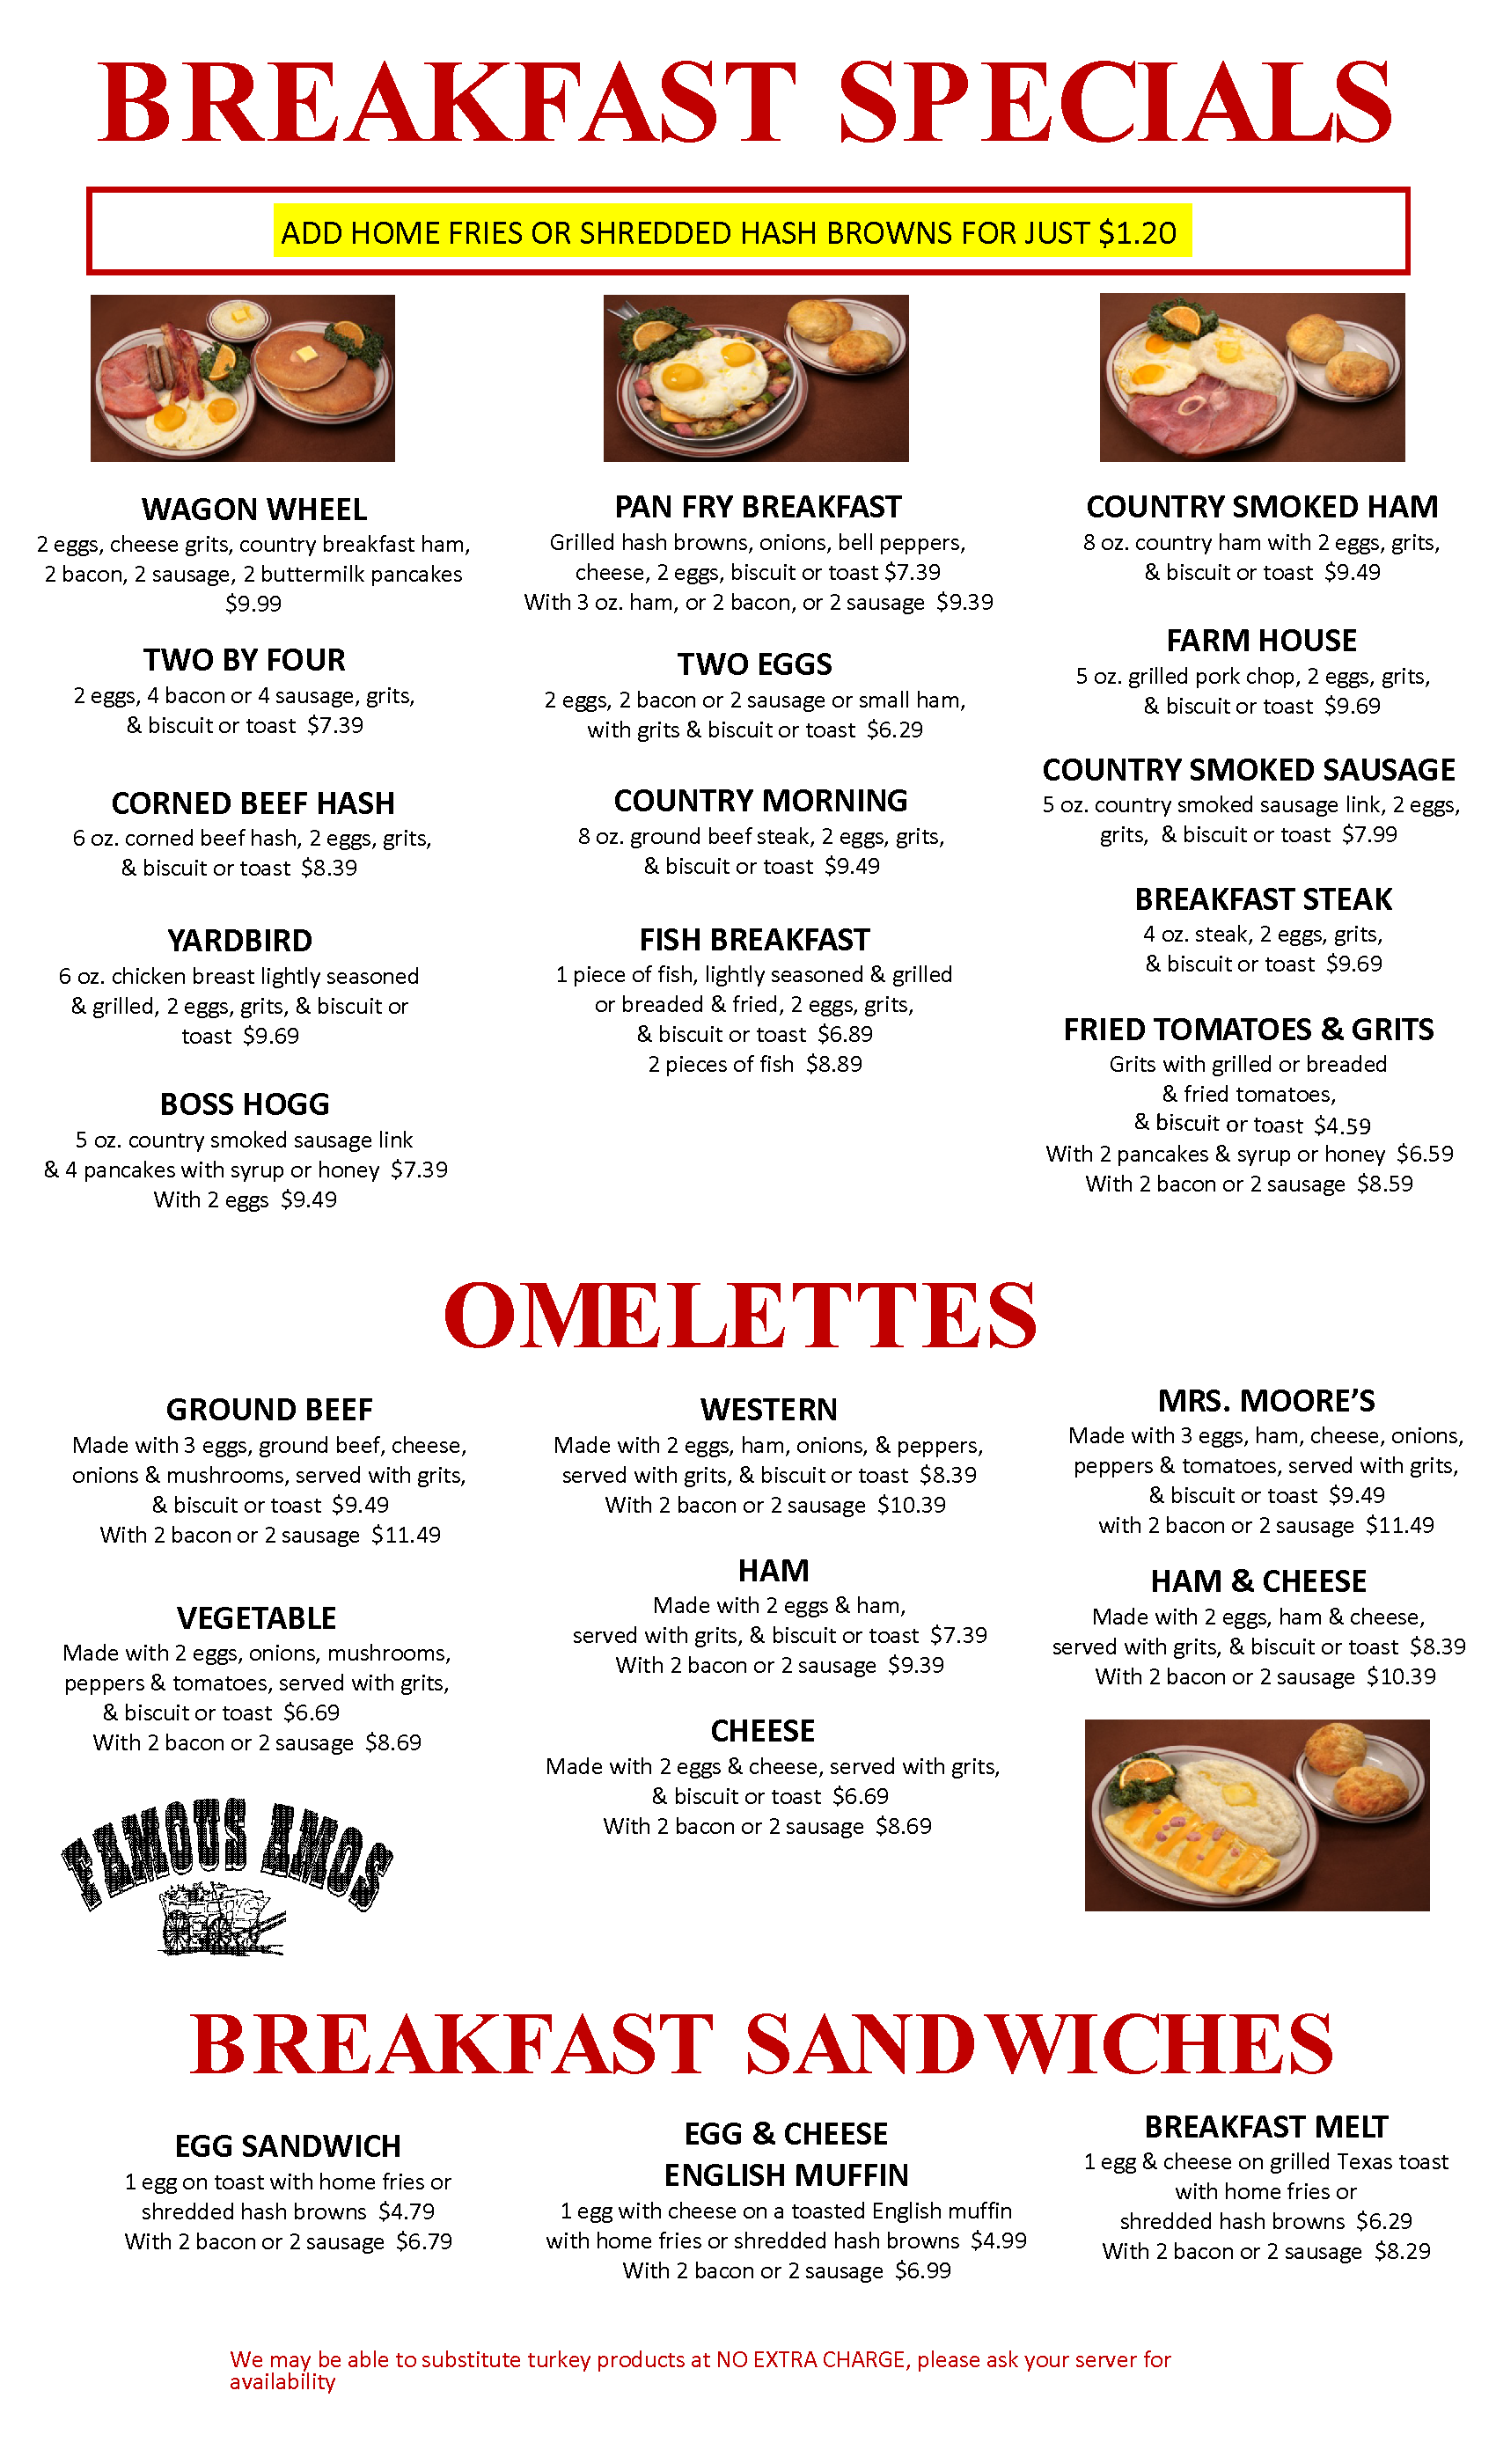 Famous Amos Menu - Breakfast Specials (Page 2)